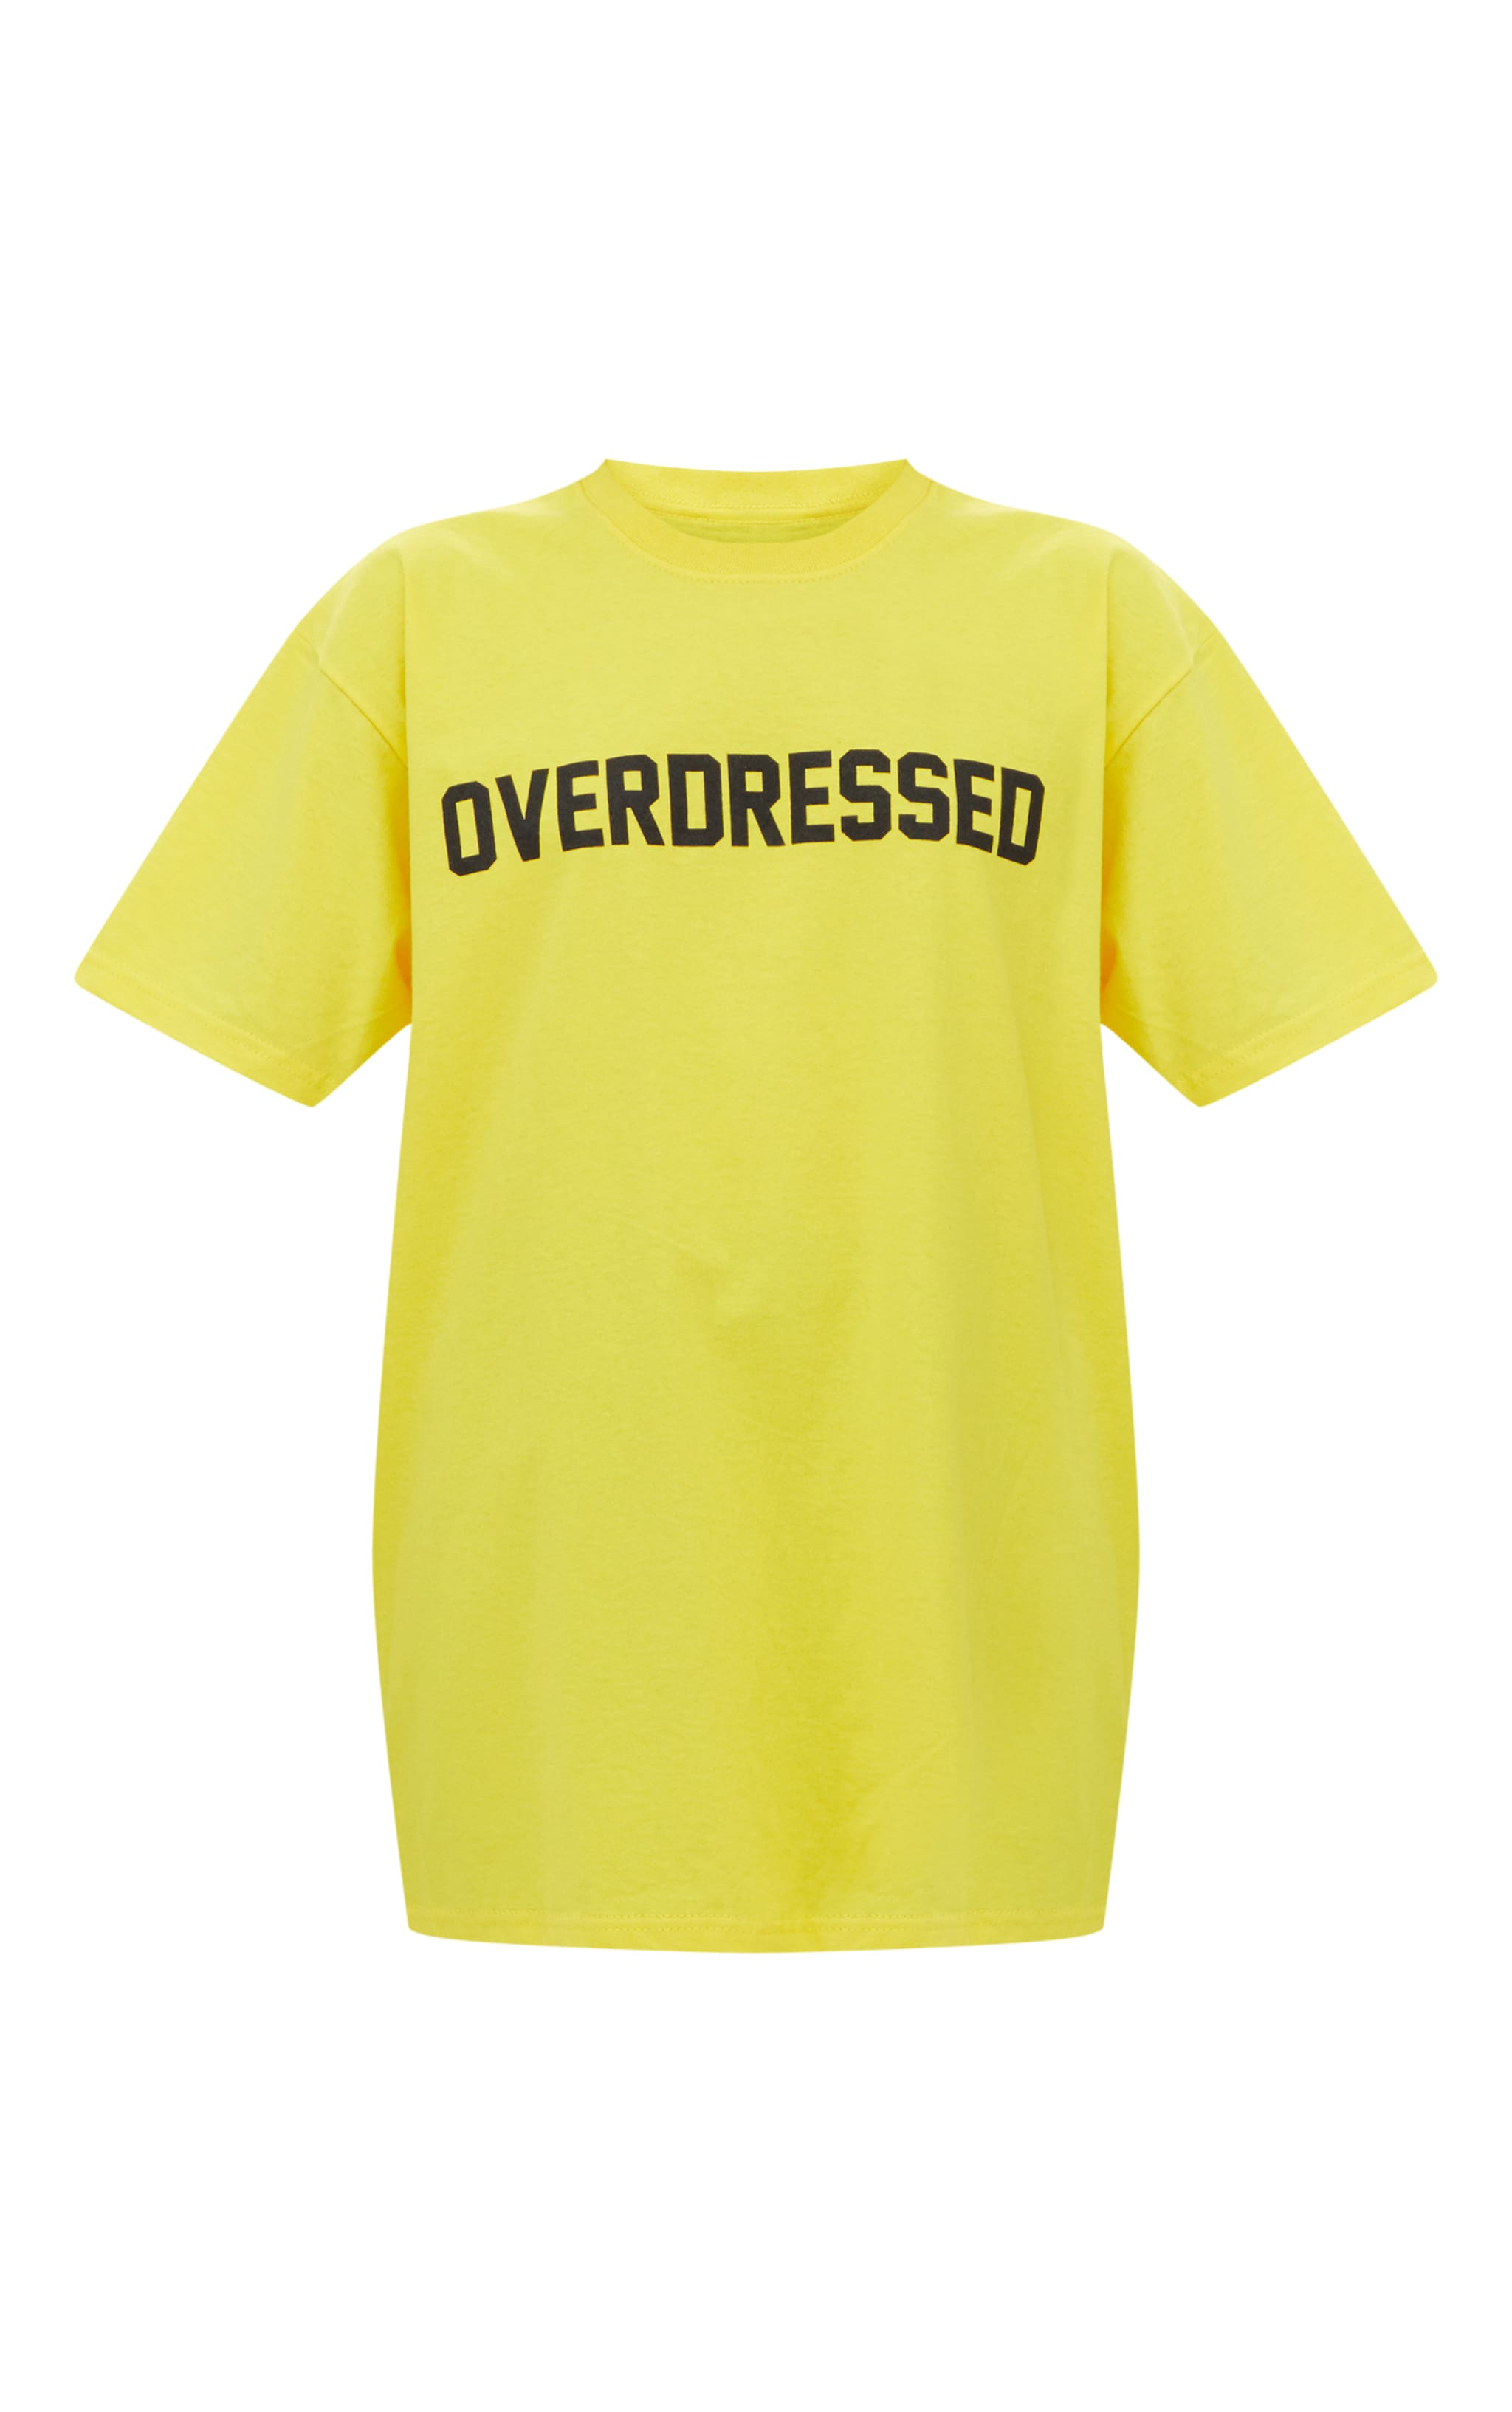 Overdressed Slogan Yellow Oversized T Shirt 5